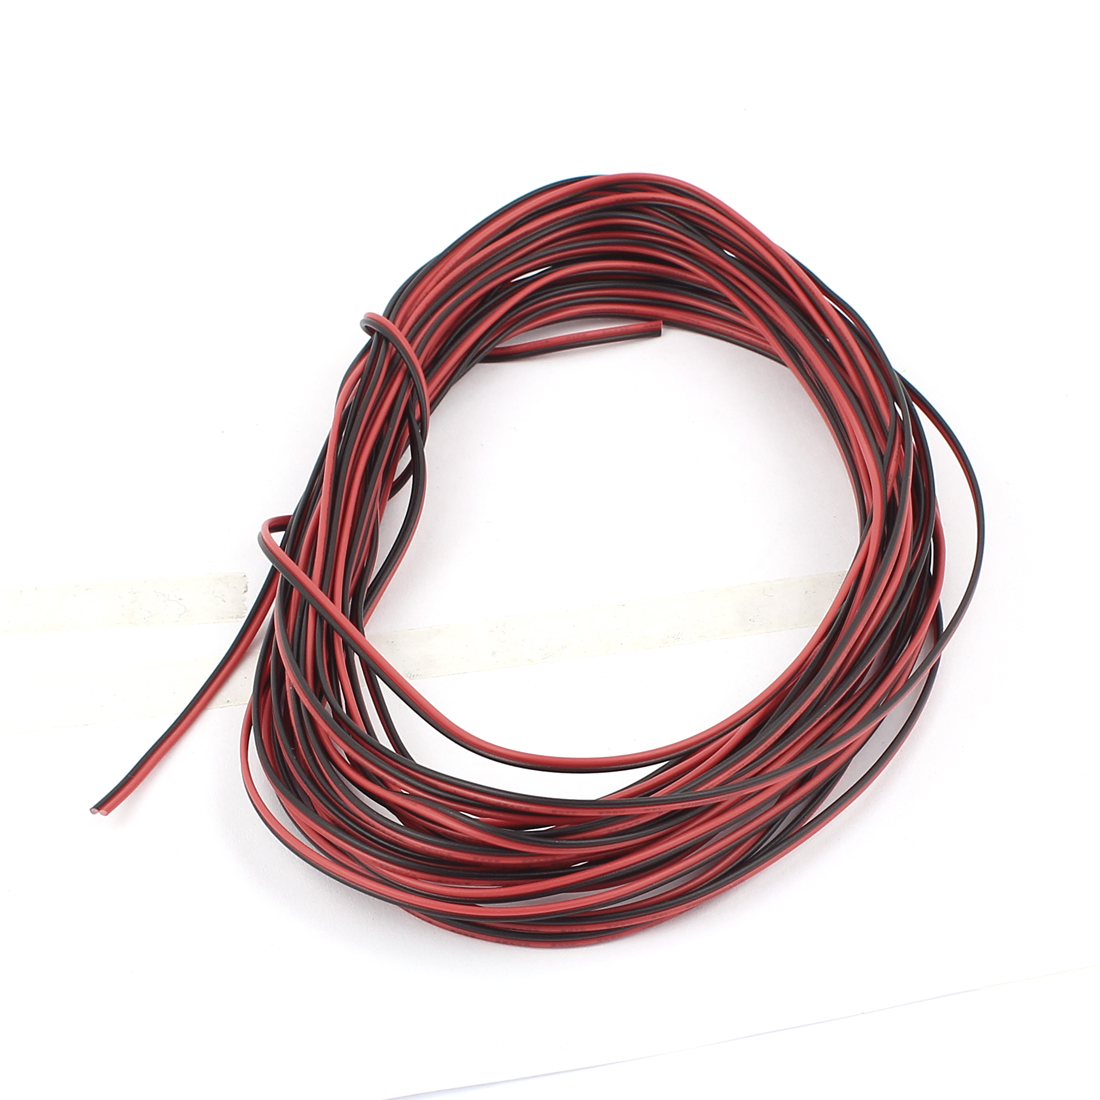 28AWG Indoor Outdoor PVC Insulated Electrical Wire Cable Black Red 10 Meters